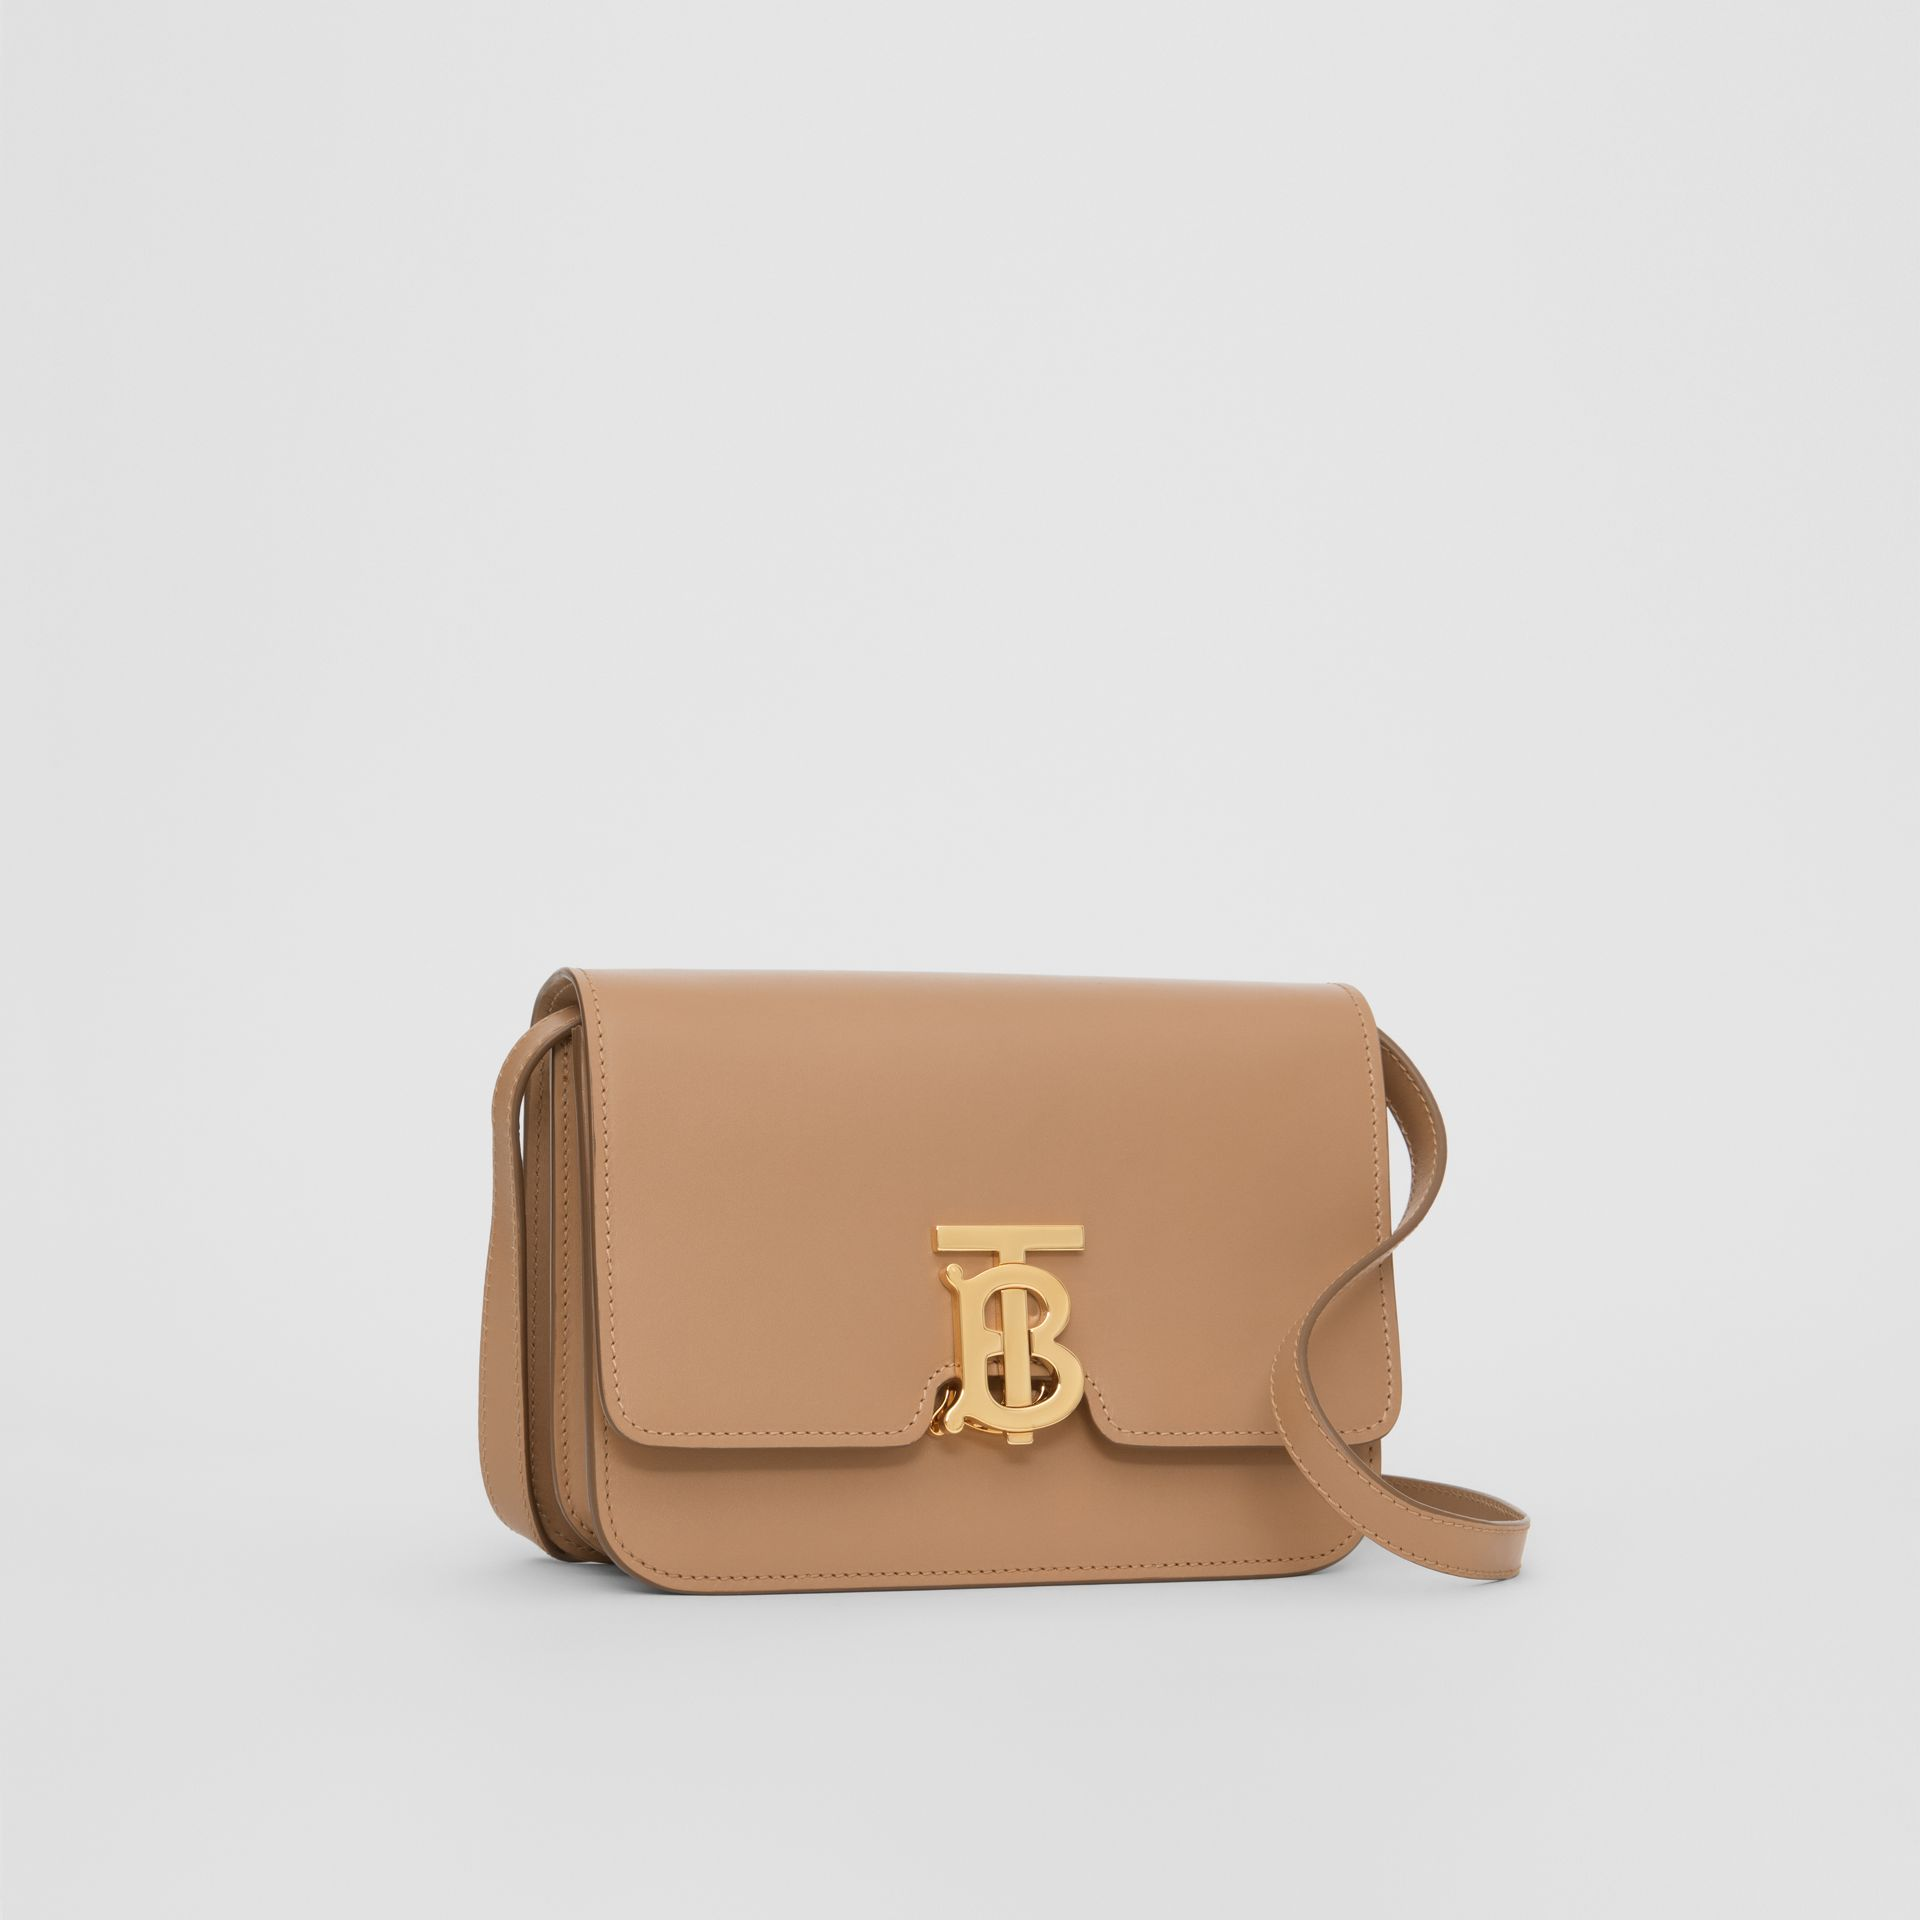 Small Leather TB Bag in Light Camel - Women | Burberry Hong Kong - gallery image 4